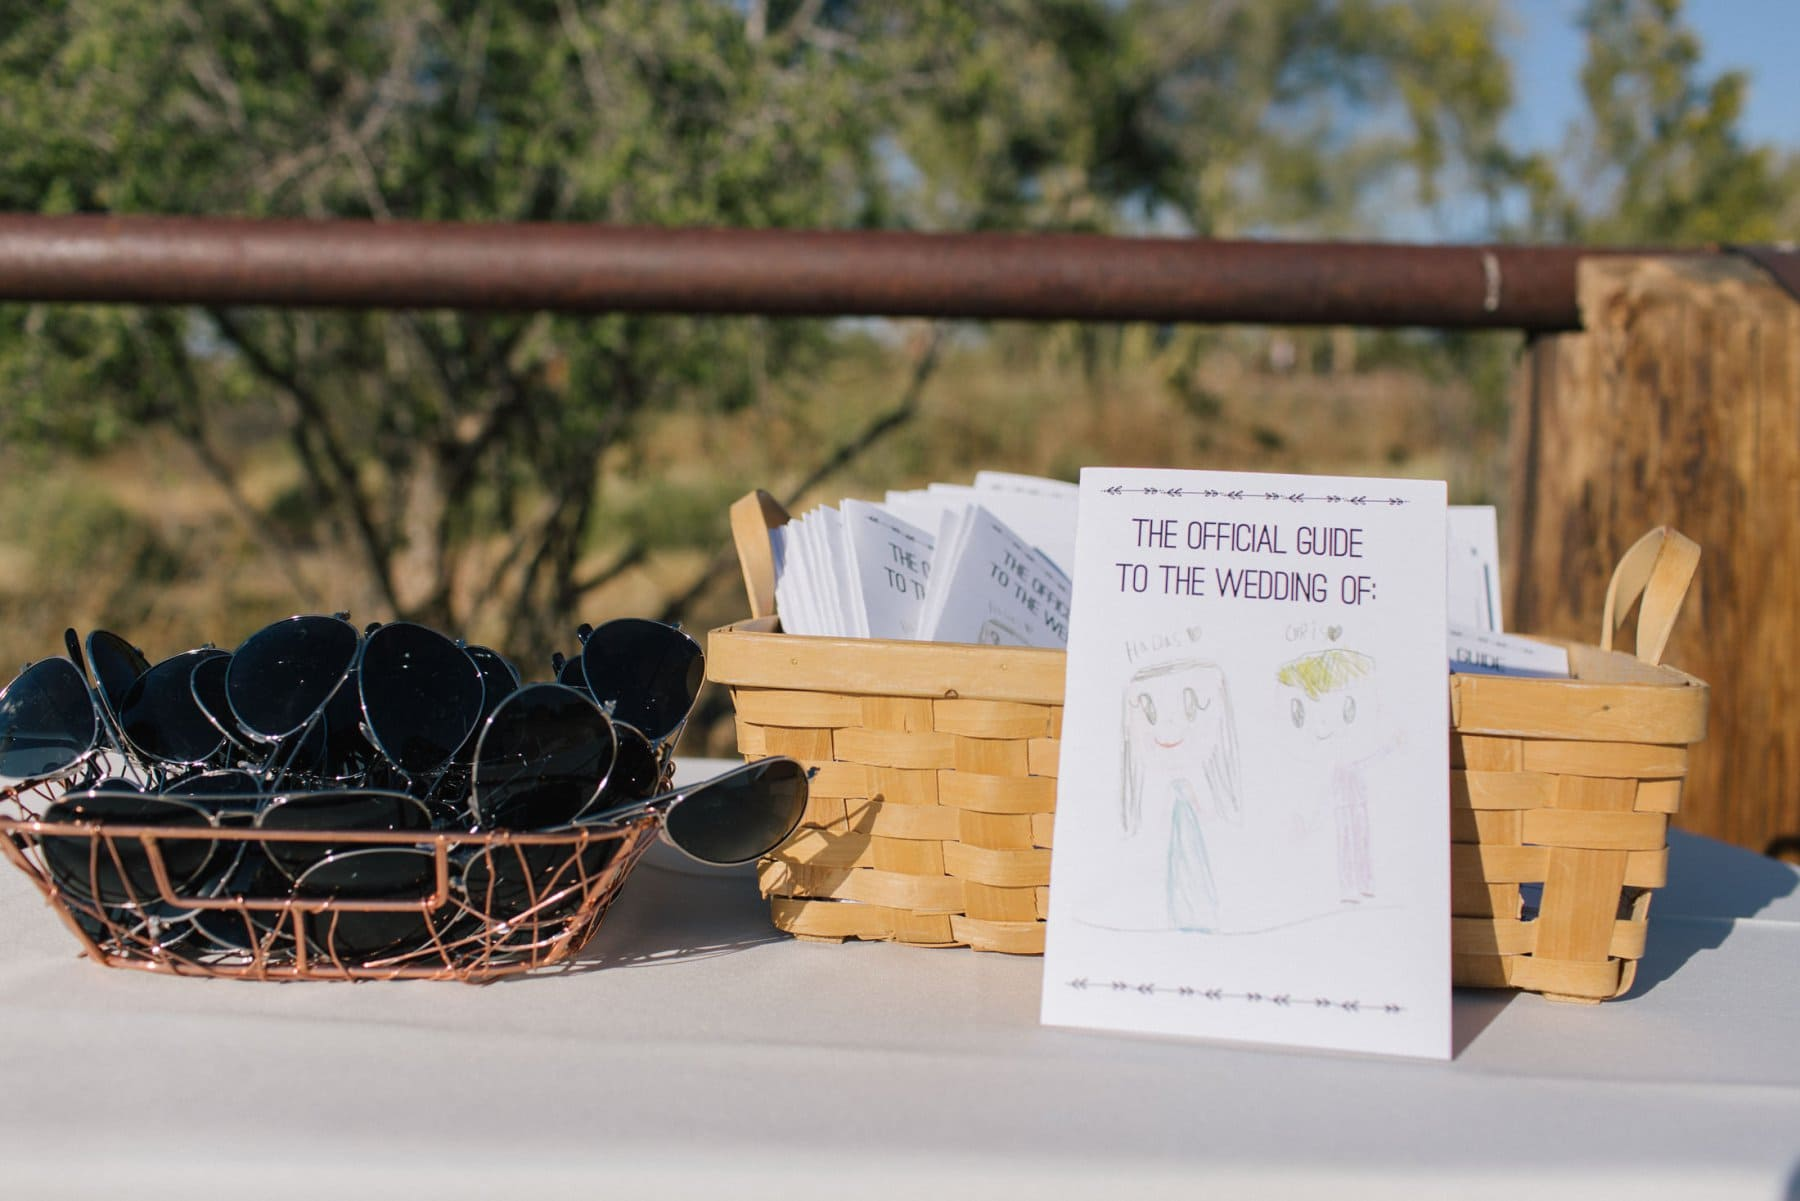 Scottsdale wedding programs with hand drawn kids illustration and sunglasses